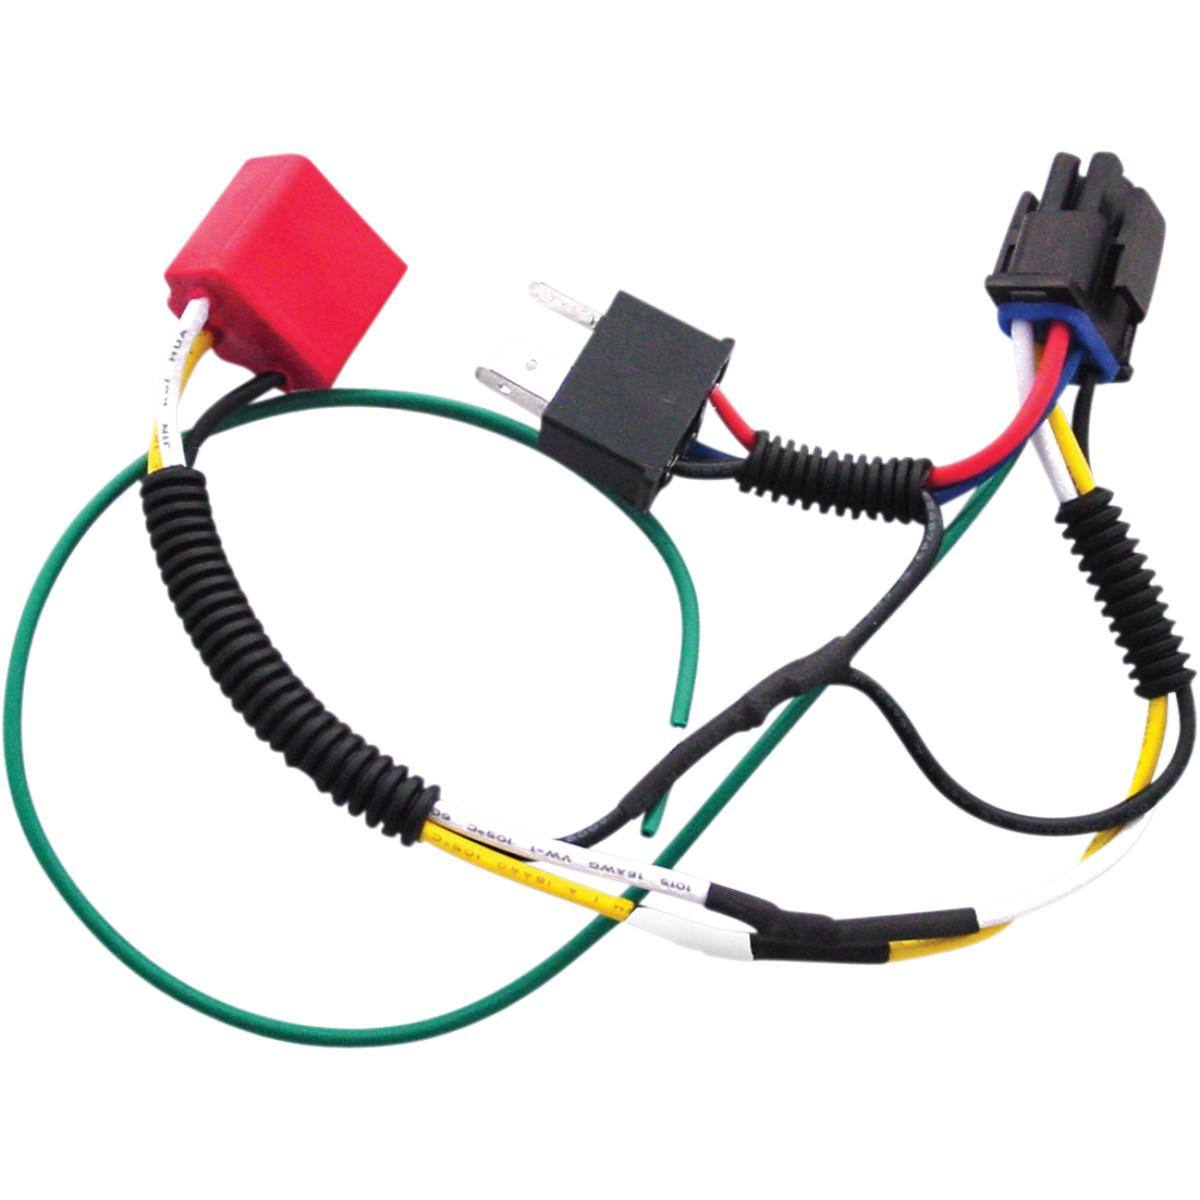 hight resolution of single h4 wiring harness kit for plug and play diamond star headlight modulator for sale in lowville ny d d racing 315 376 8013